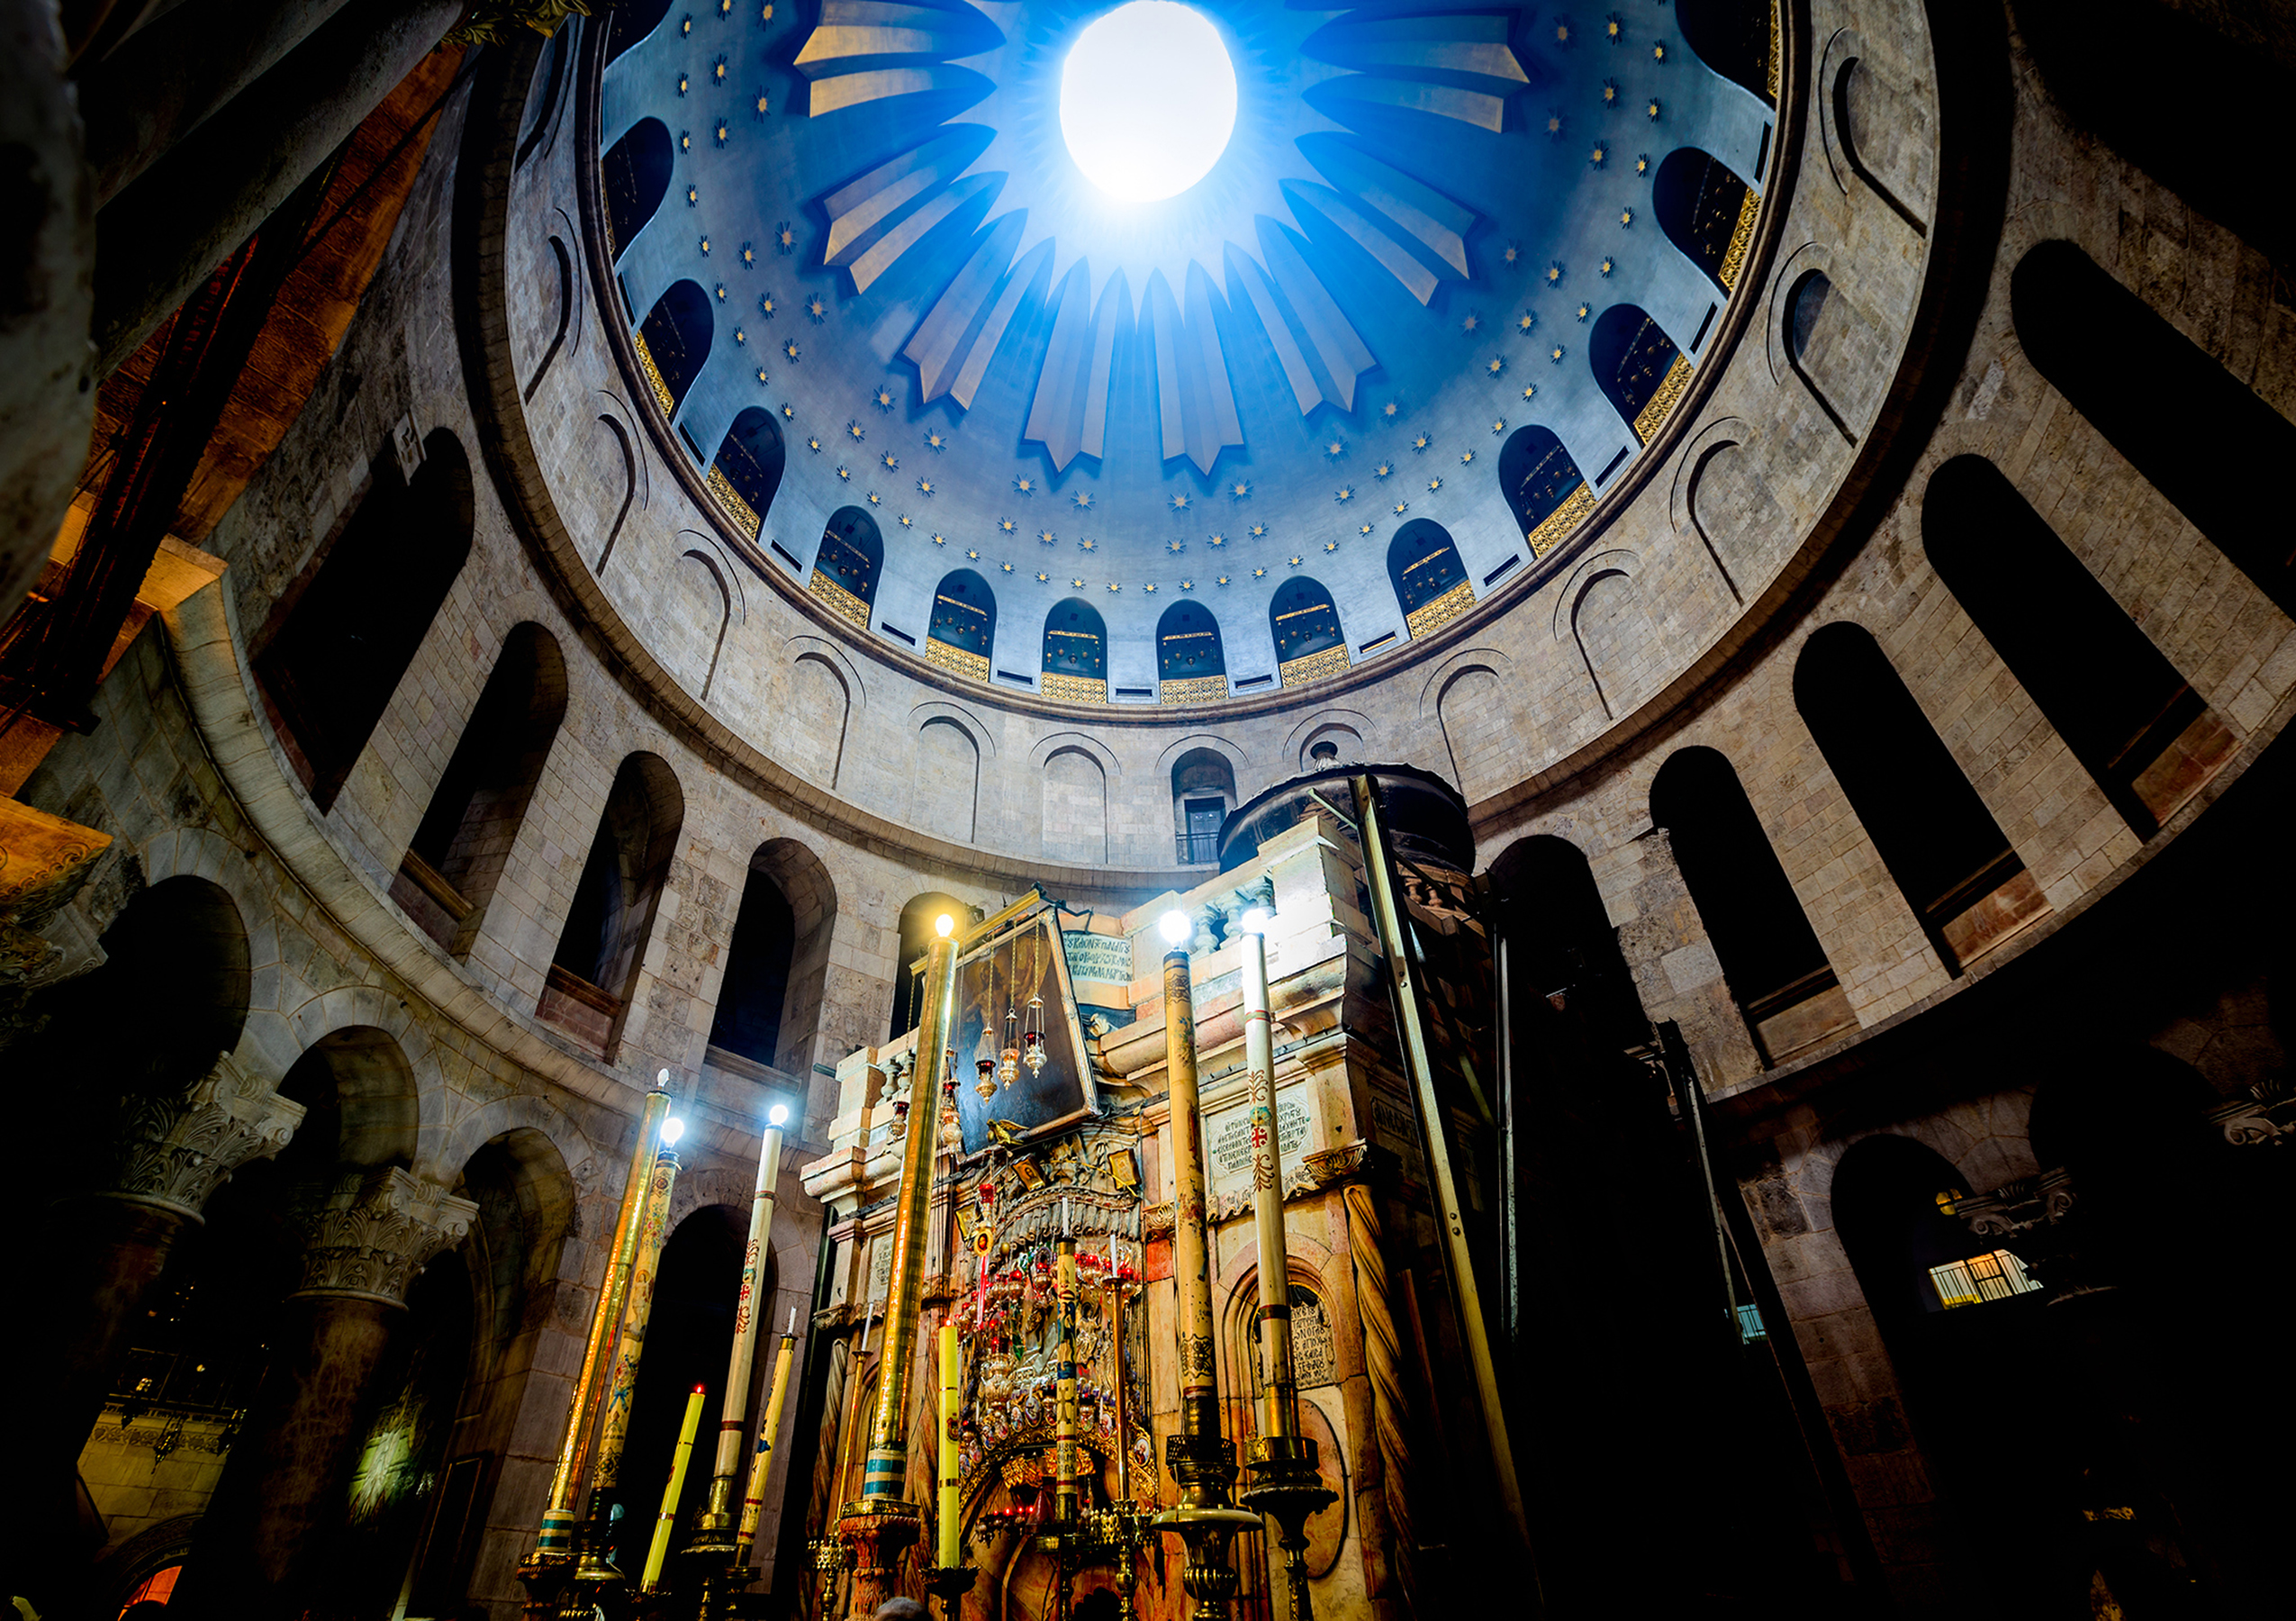 The tomb of Jesus Christ in the Church of the Holy Sepulcher in Jerusalem.